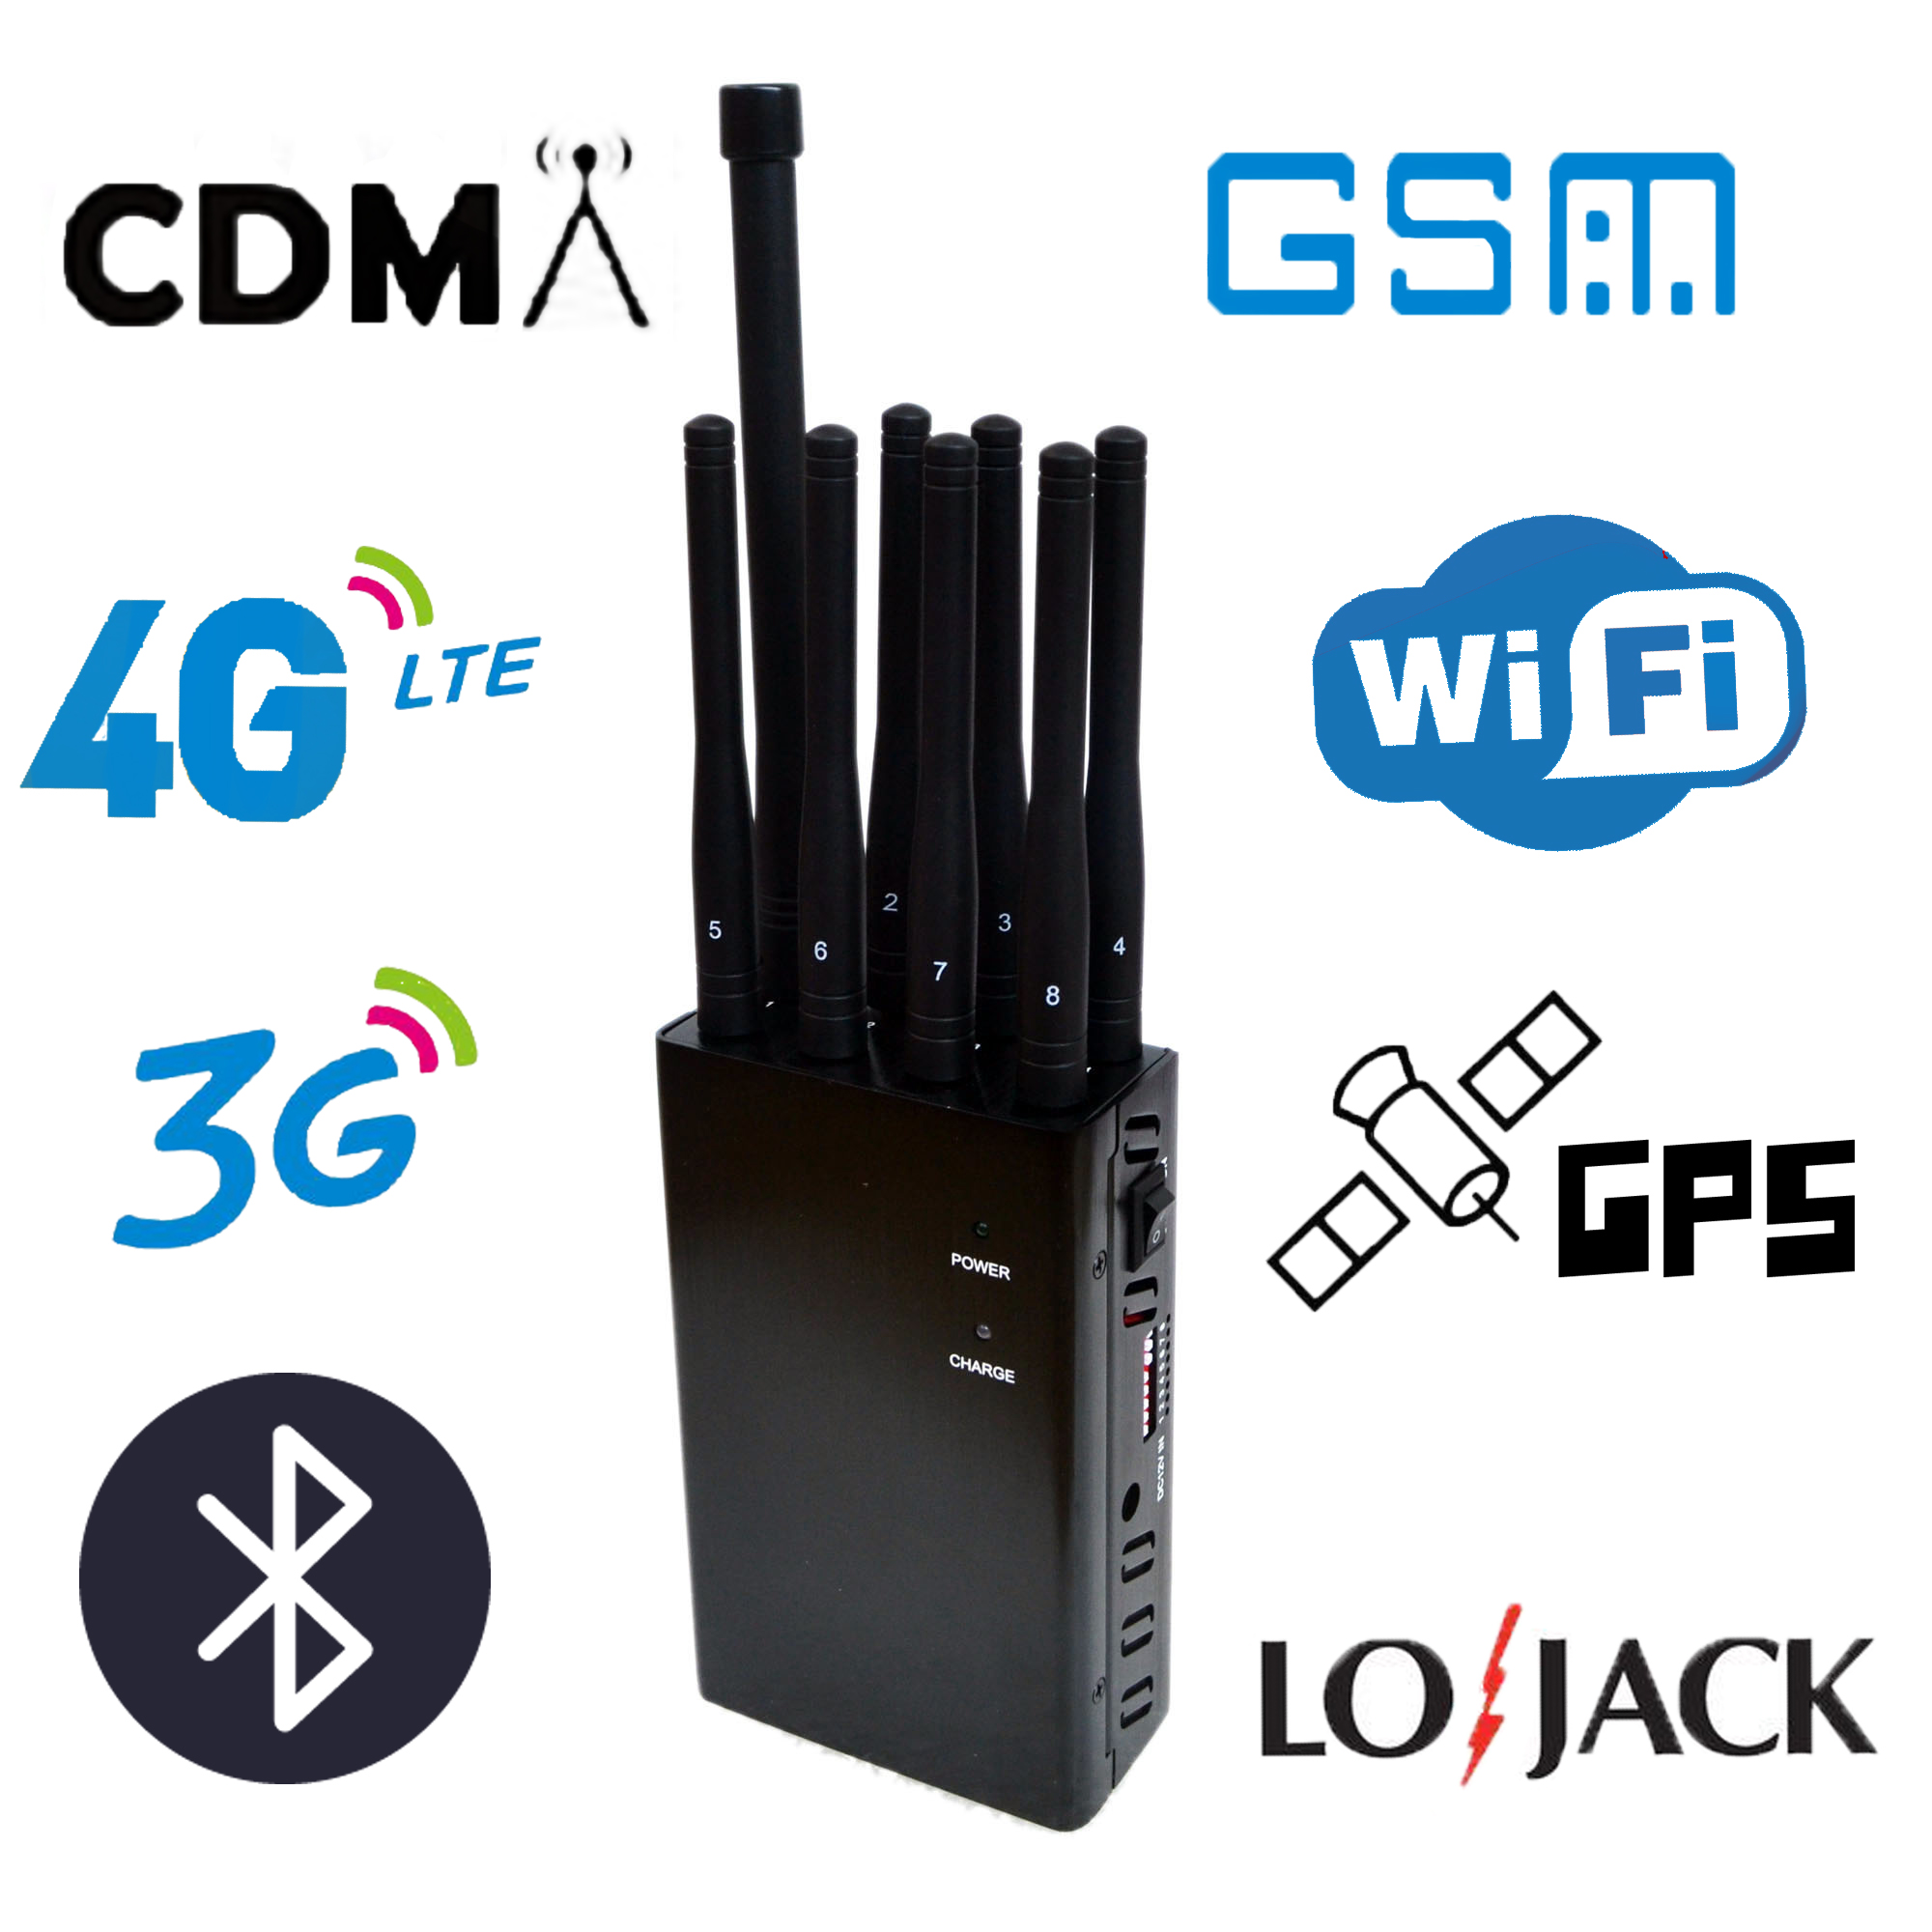 8 Antennas Handheld Cell Phone Isolator, Block 2G/3G/4G and LOJACK GPS WIFI Signals,jaming radius up to 20meters , 4000mAh (4W)